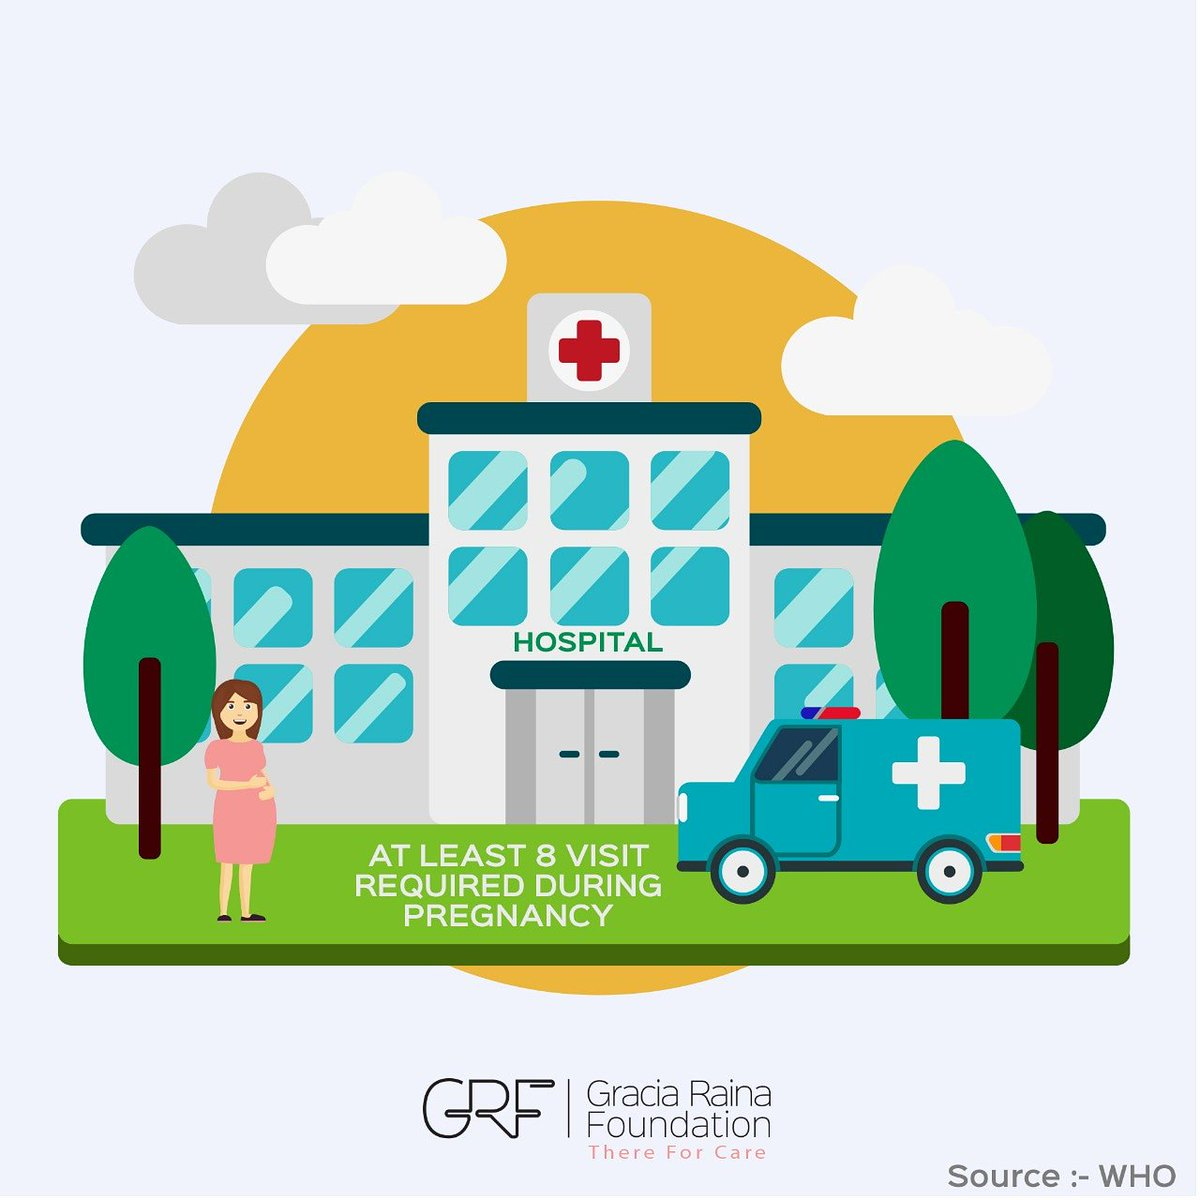 As per WHO, minimum 8 doctor visits are recommended during the #pregnancy.Women who do not receive the necessary check-ups miss the opportunity to detect problems & receive appropriate care.This also includes #immunization & prevention of #mothertochild transmission of #HIV! #grf